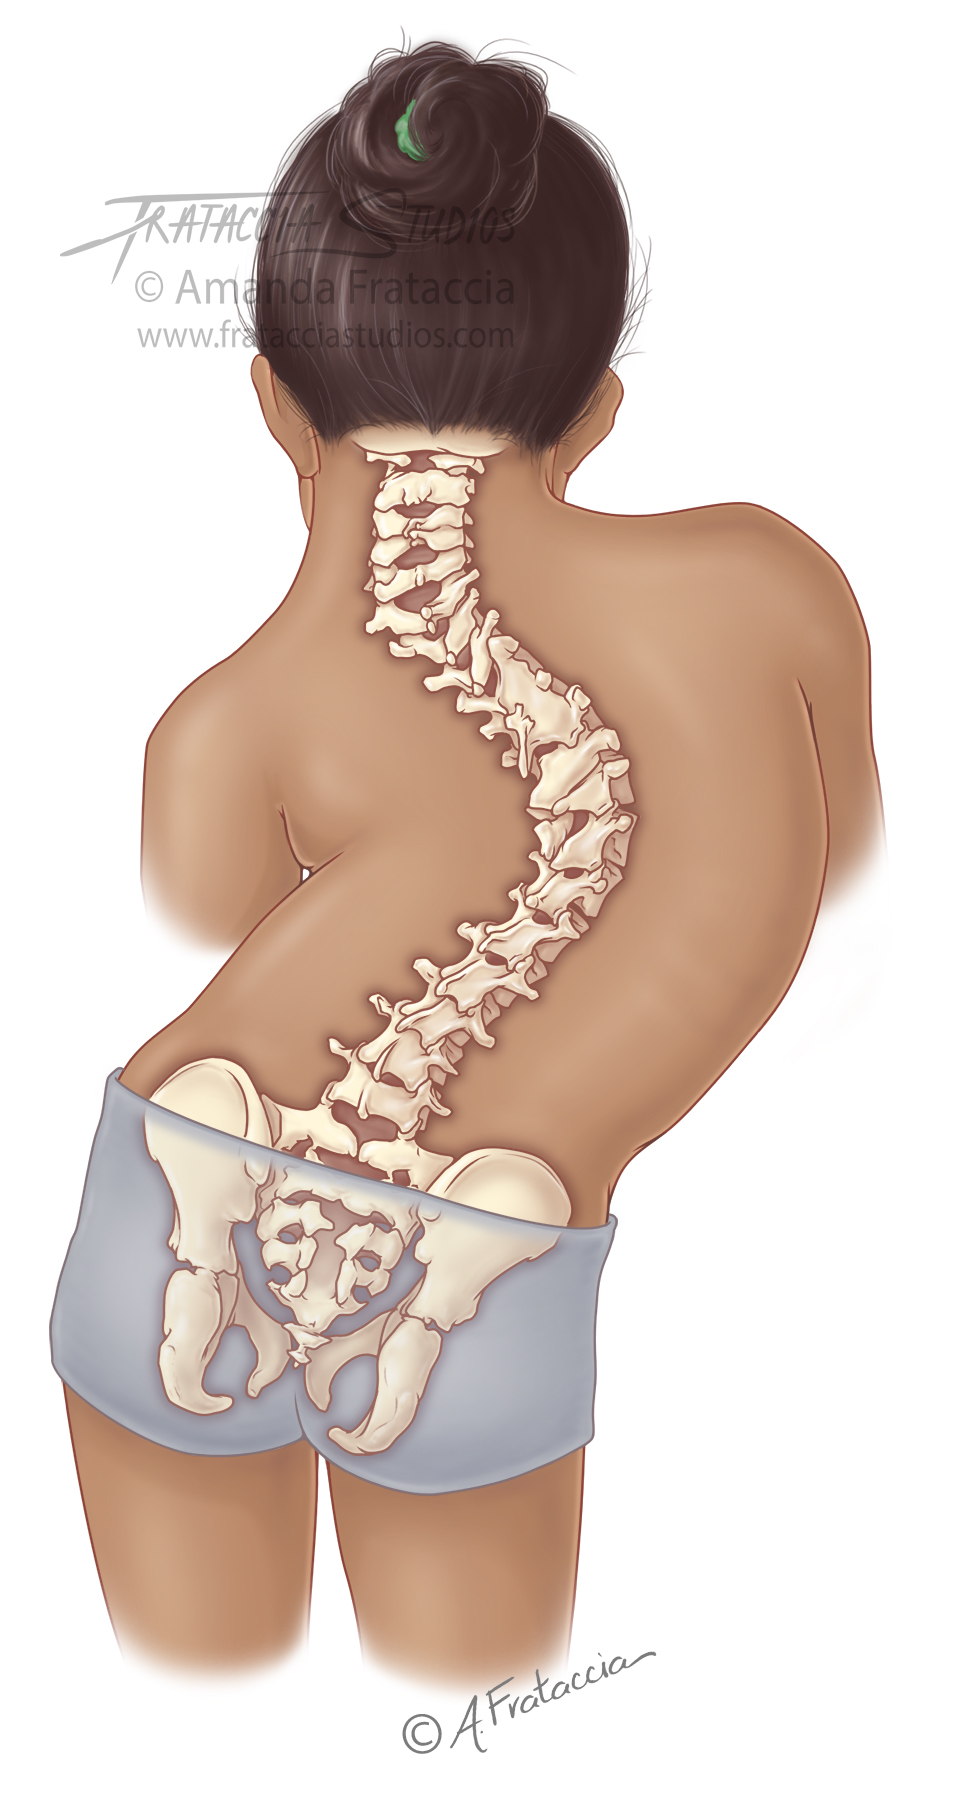 Congenital Malformations of Spine in Ped